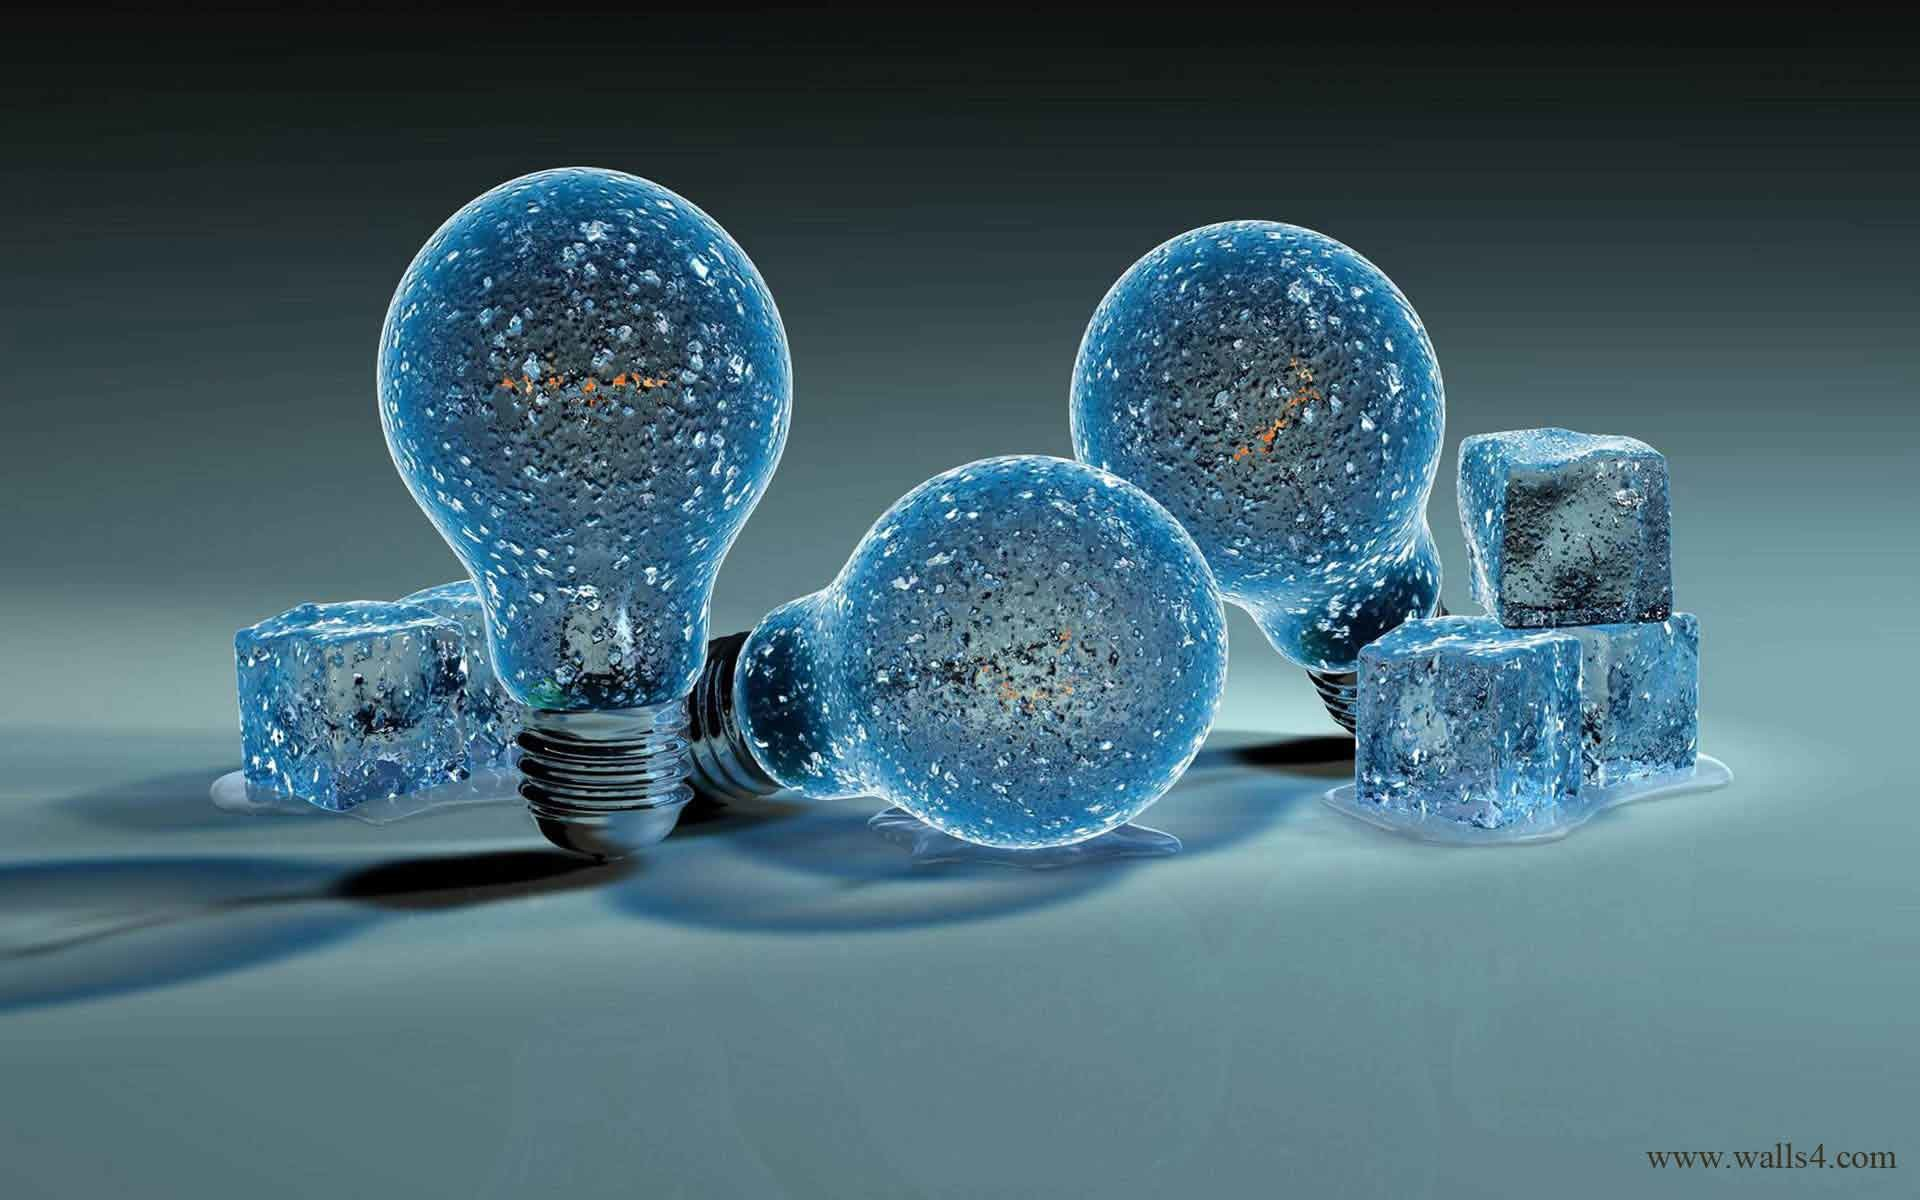 Free Wallpapers – Ice bulbs of ice cubes wallpaper